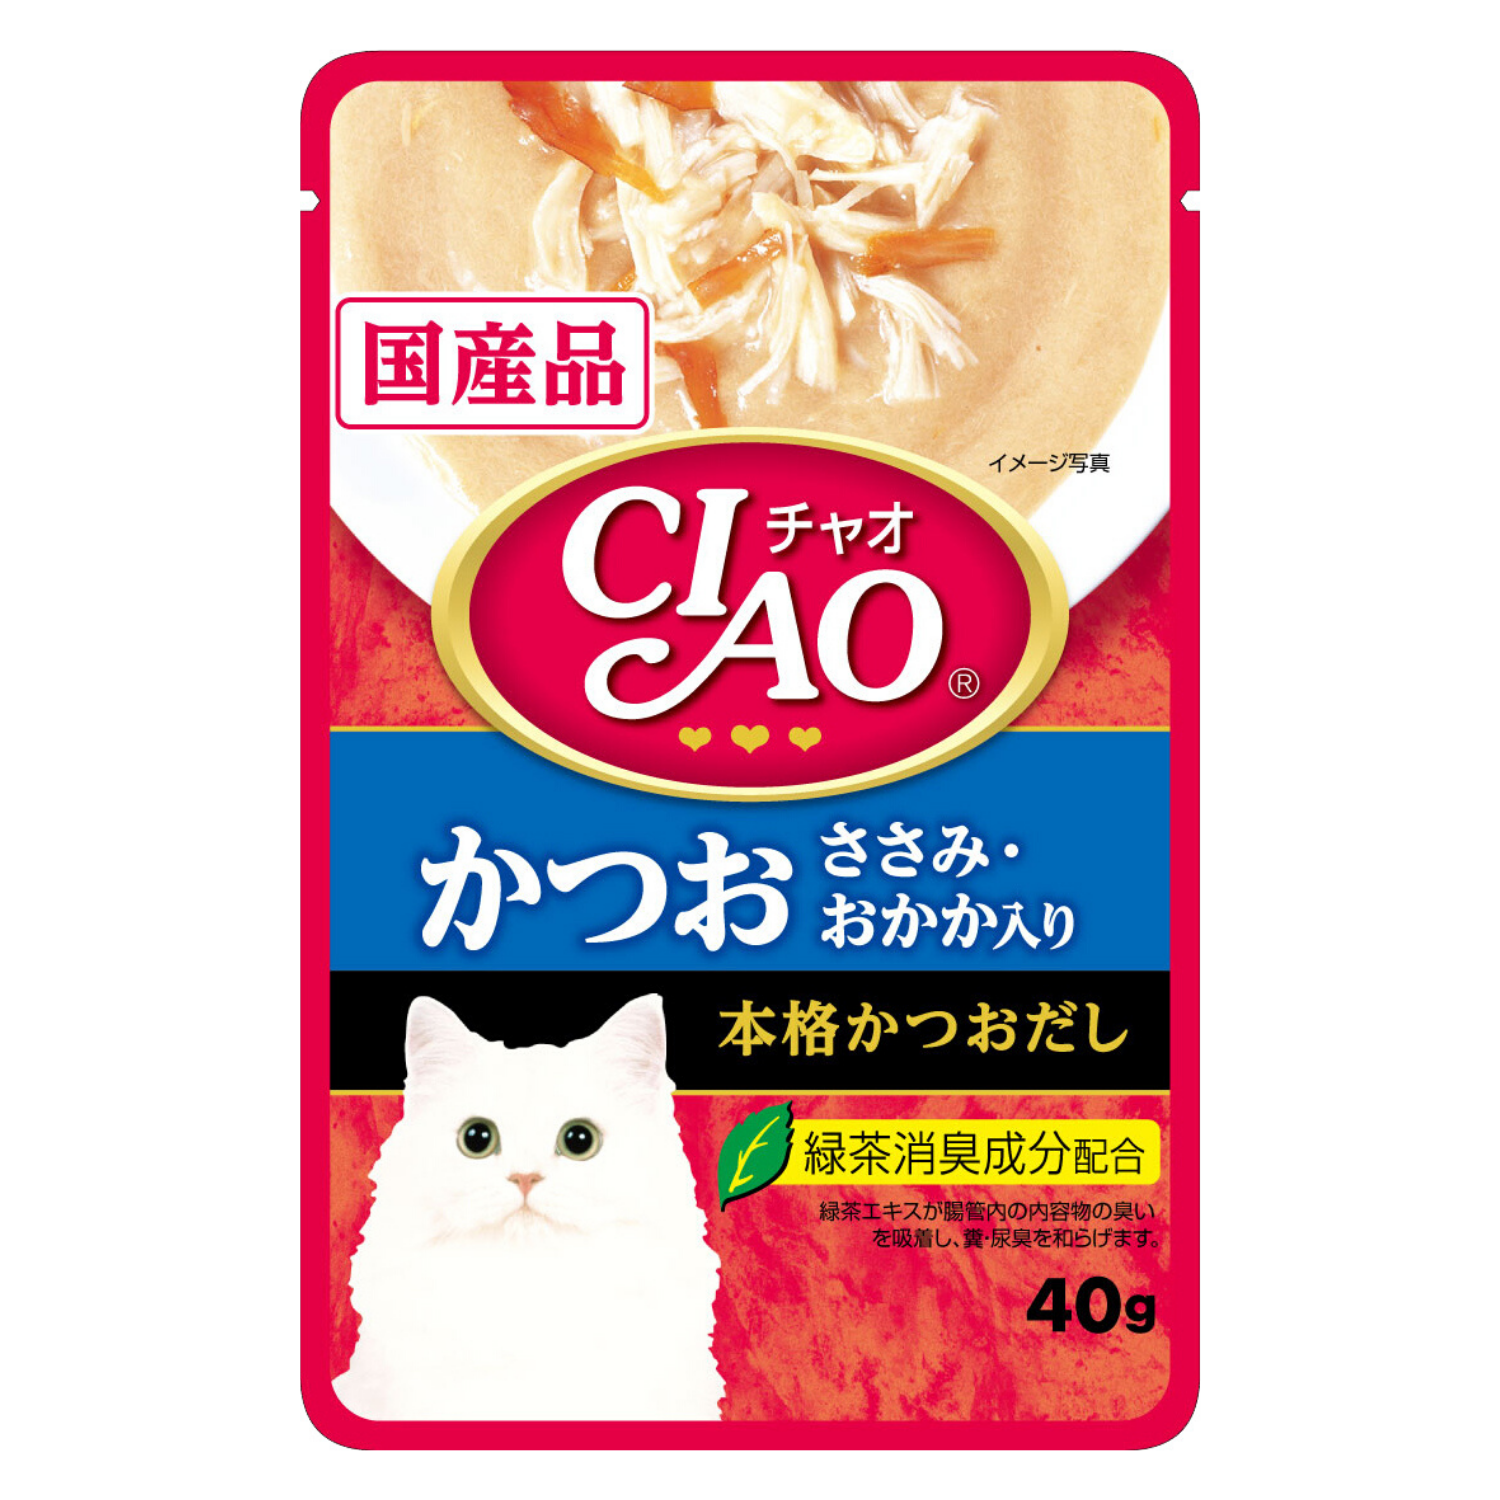 Ciao Creamy Soup Pouch Tuna Katsuo & Chiken Fillet with Dried Bonito Topping - 40g